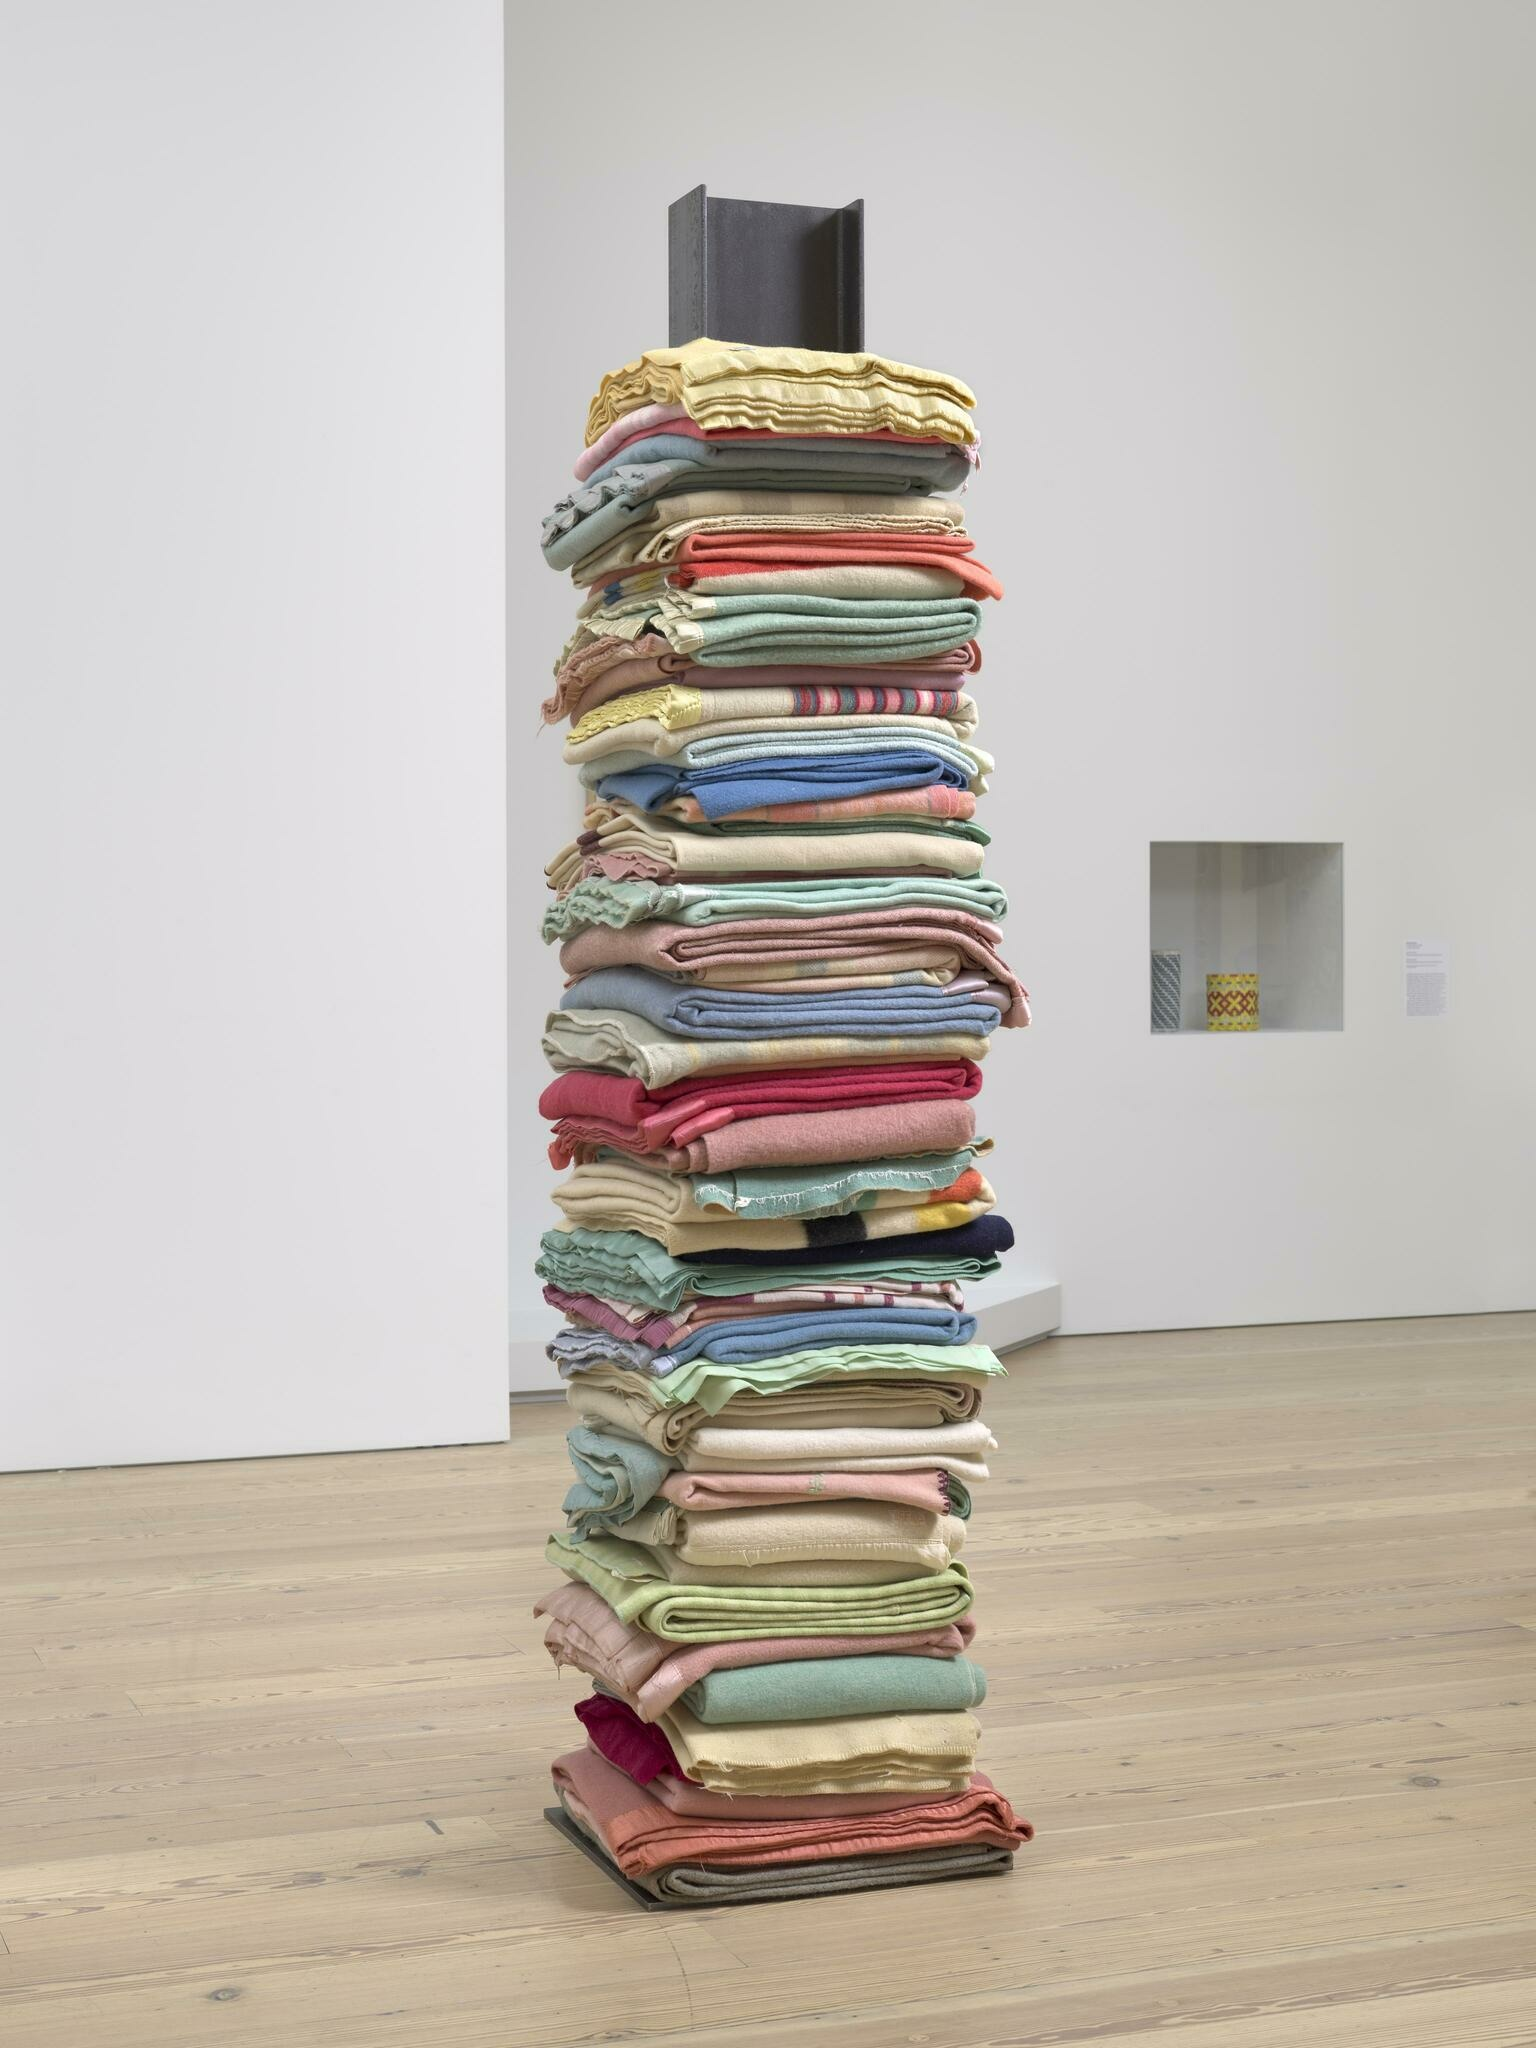 Brightly-colored reclaimed wool blankets stacked in an upward pile and punctured in the center by a vertical steel I-beam